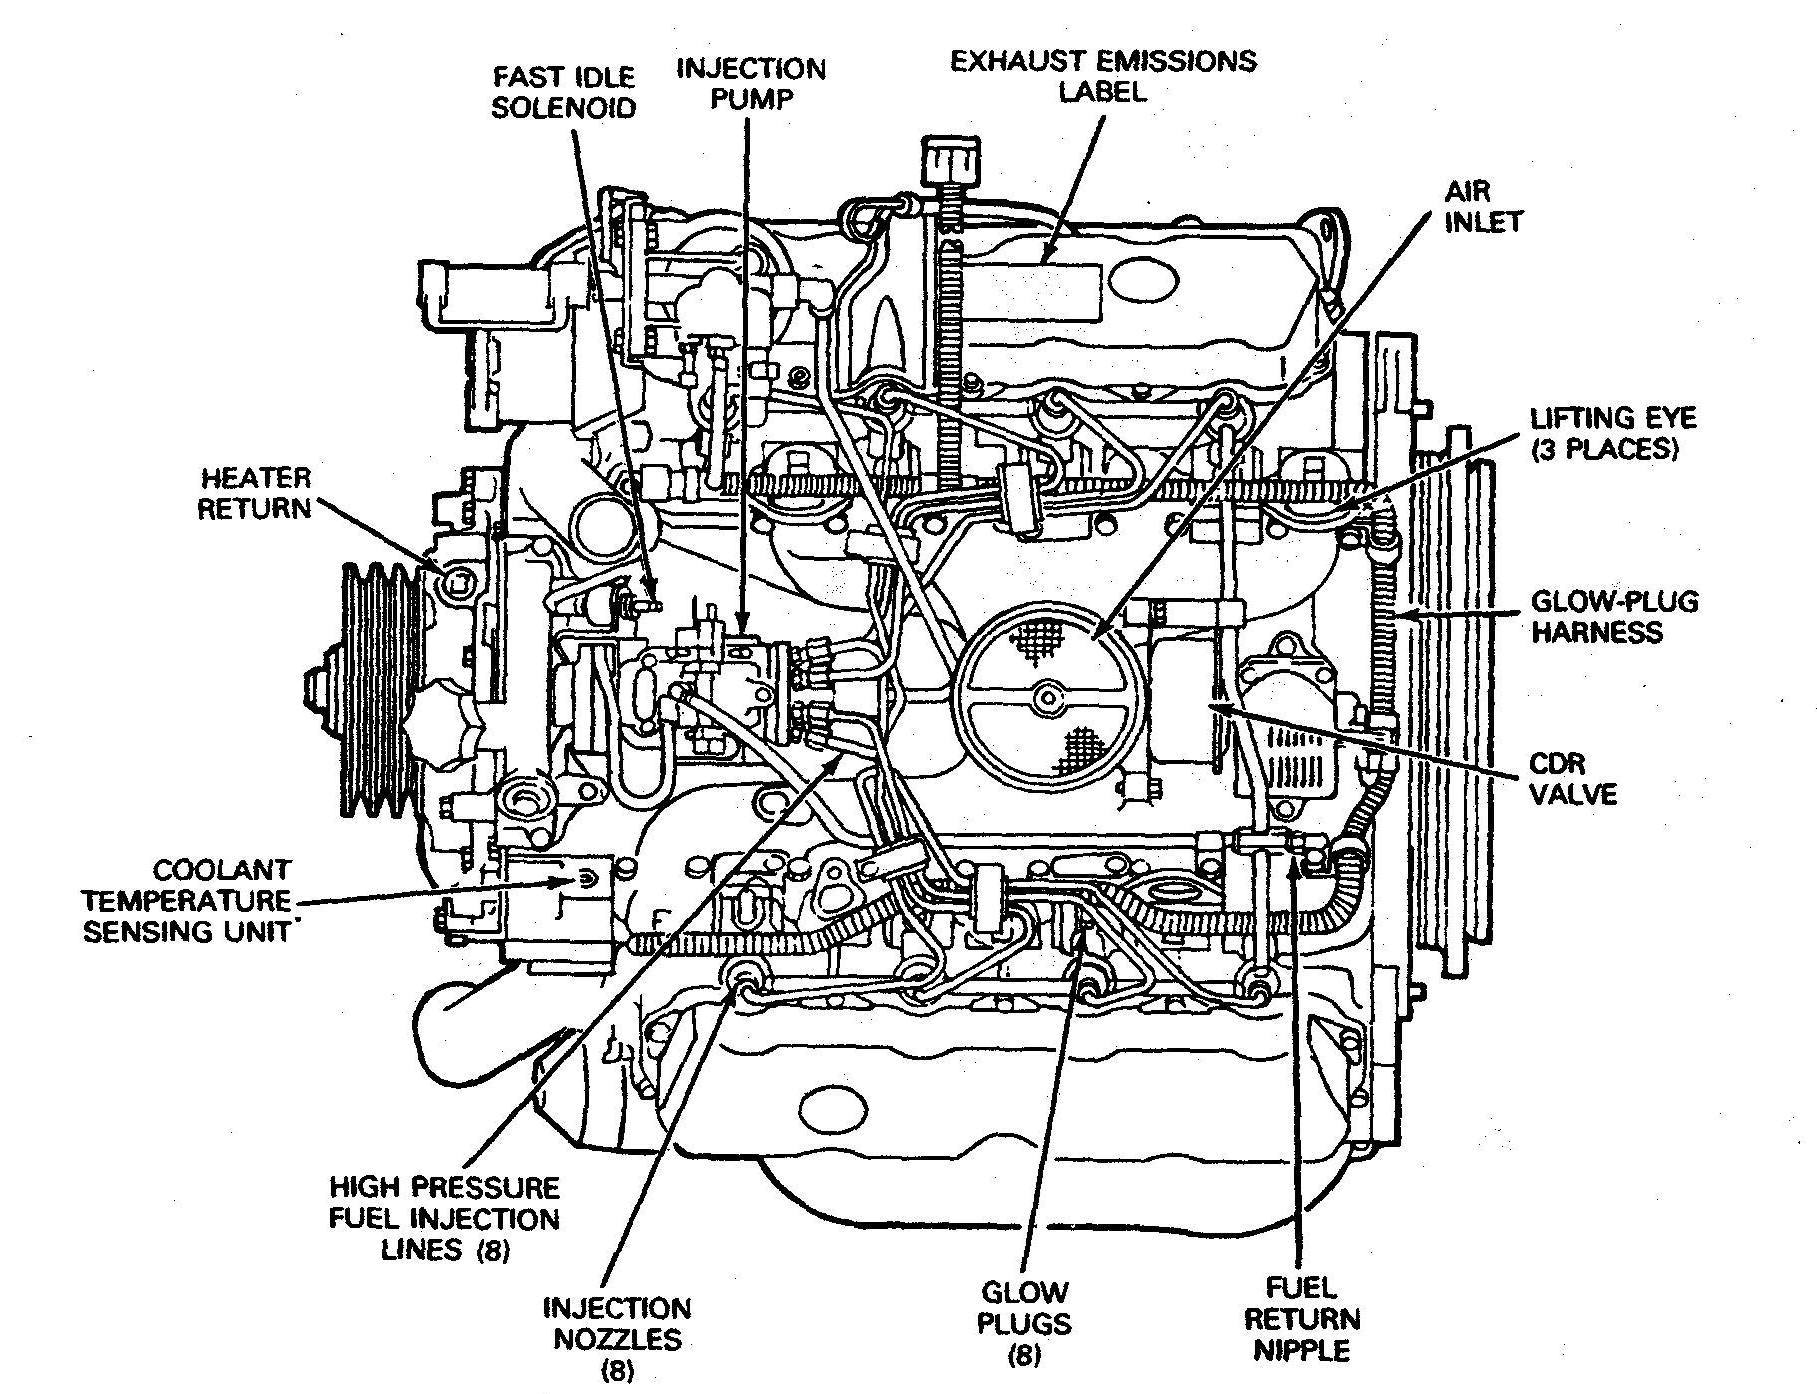 1999 chevy 6 5 turbo diesel engine wiring diagram